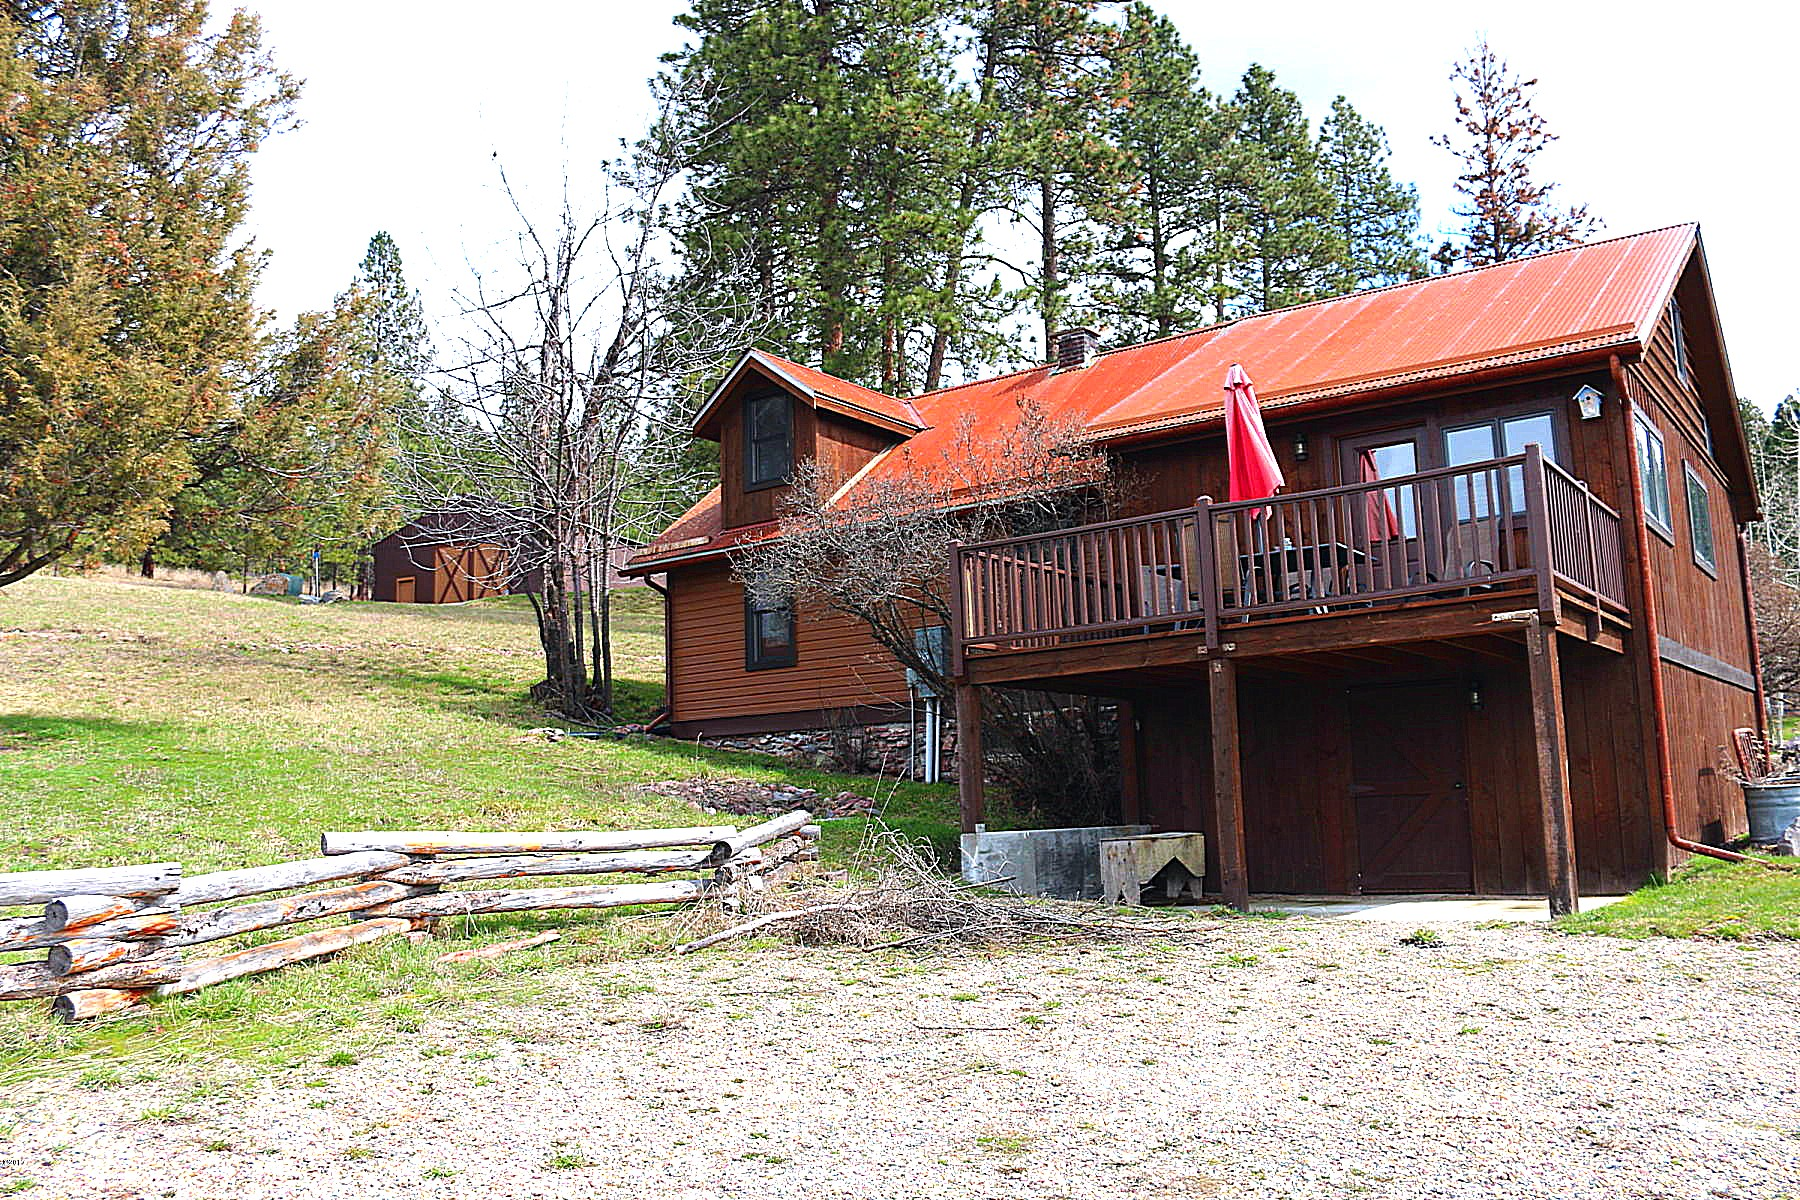 Additional photo for property listing at 62290 Leaping Horse Ln , Saint Ignatius, MT 59865 62290  Leaping Horse Ln St. Ignatius, Montana 59865 United States